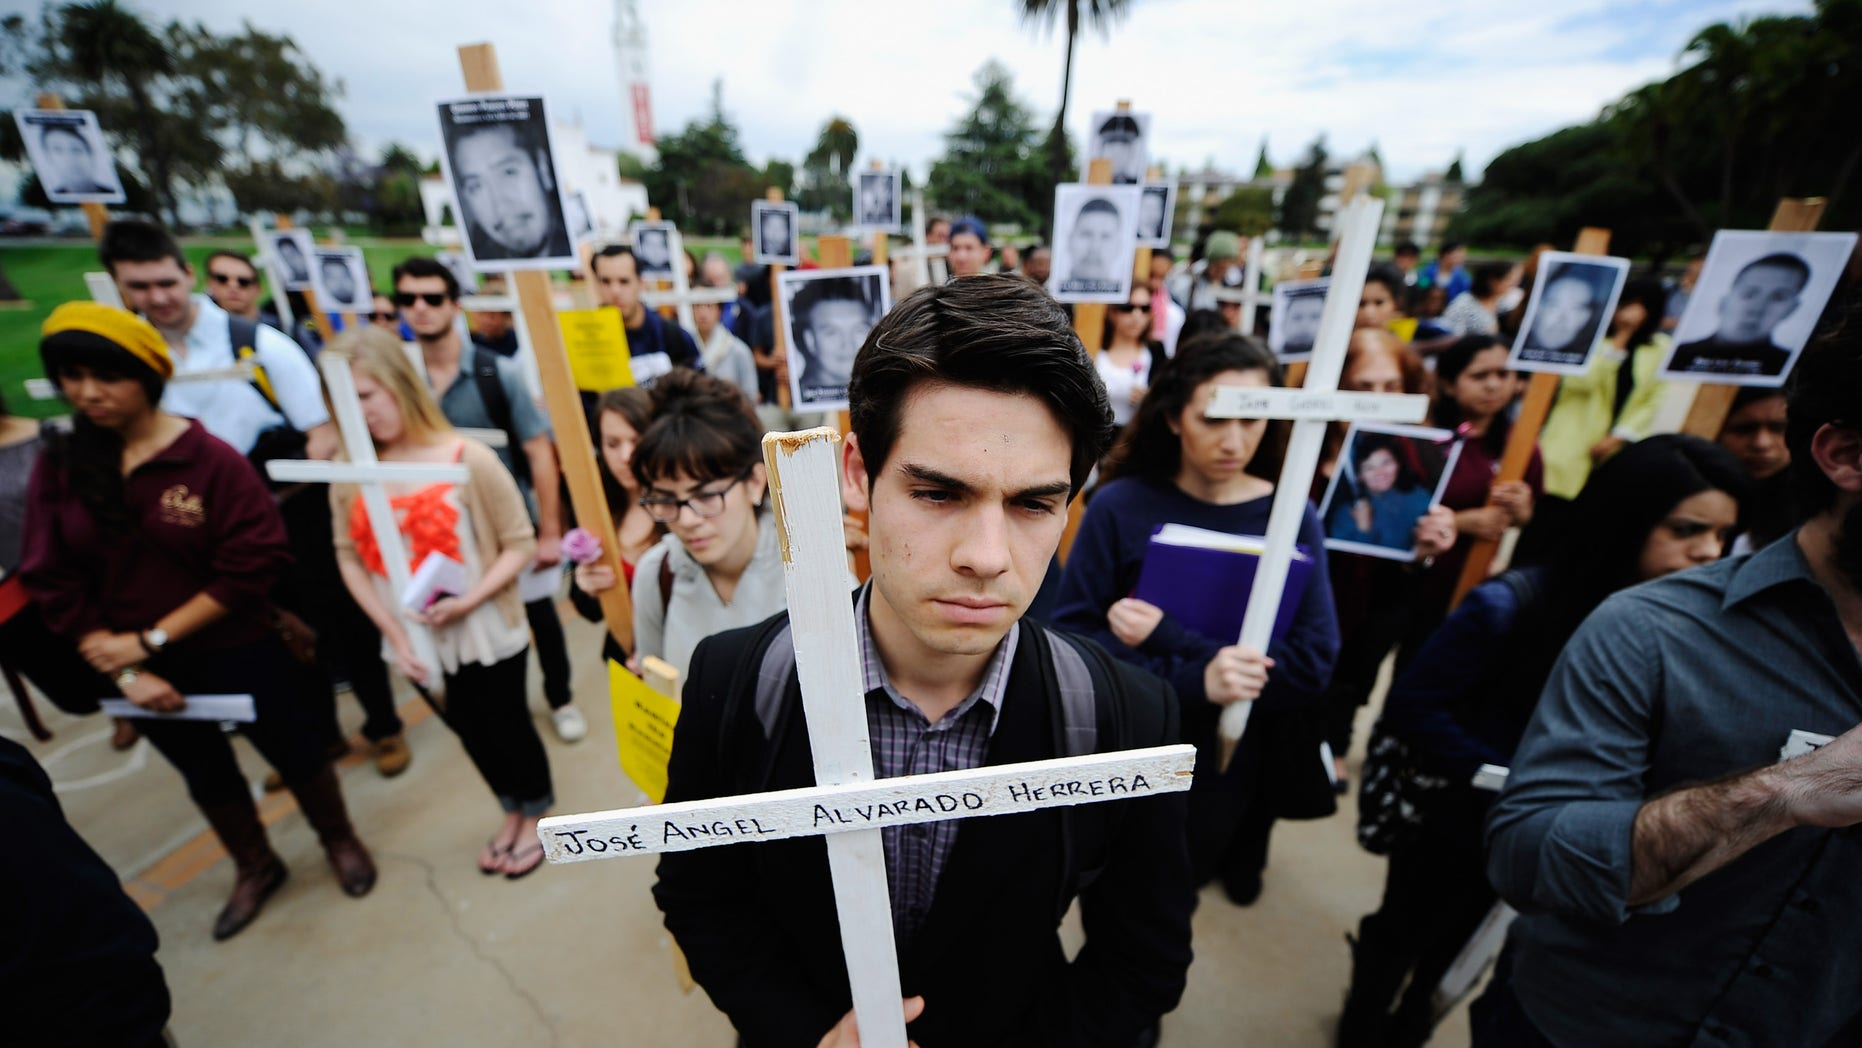 Loyola Marymount University student Michael Mardinkian takes part in a 50-cross procession on the university campus on April 25, 2012 in Los Angeles, California. The procession was led by Javier Sicilia, poet and leader of the Mexican anti-drug group Movement for Peace with Justice and Dignity, to raise awareness on the drug wars in Mexico and the United States to protest drug-related killings, with each cross representing 1,000 victims. (Photo by Kevork Djansezian/Getty Images)